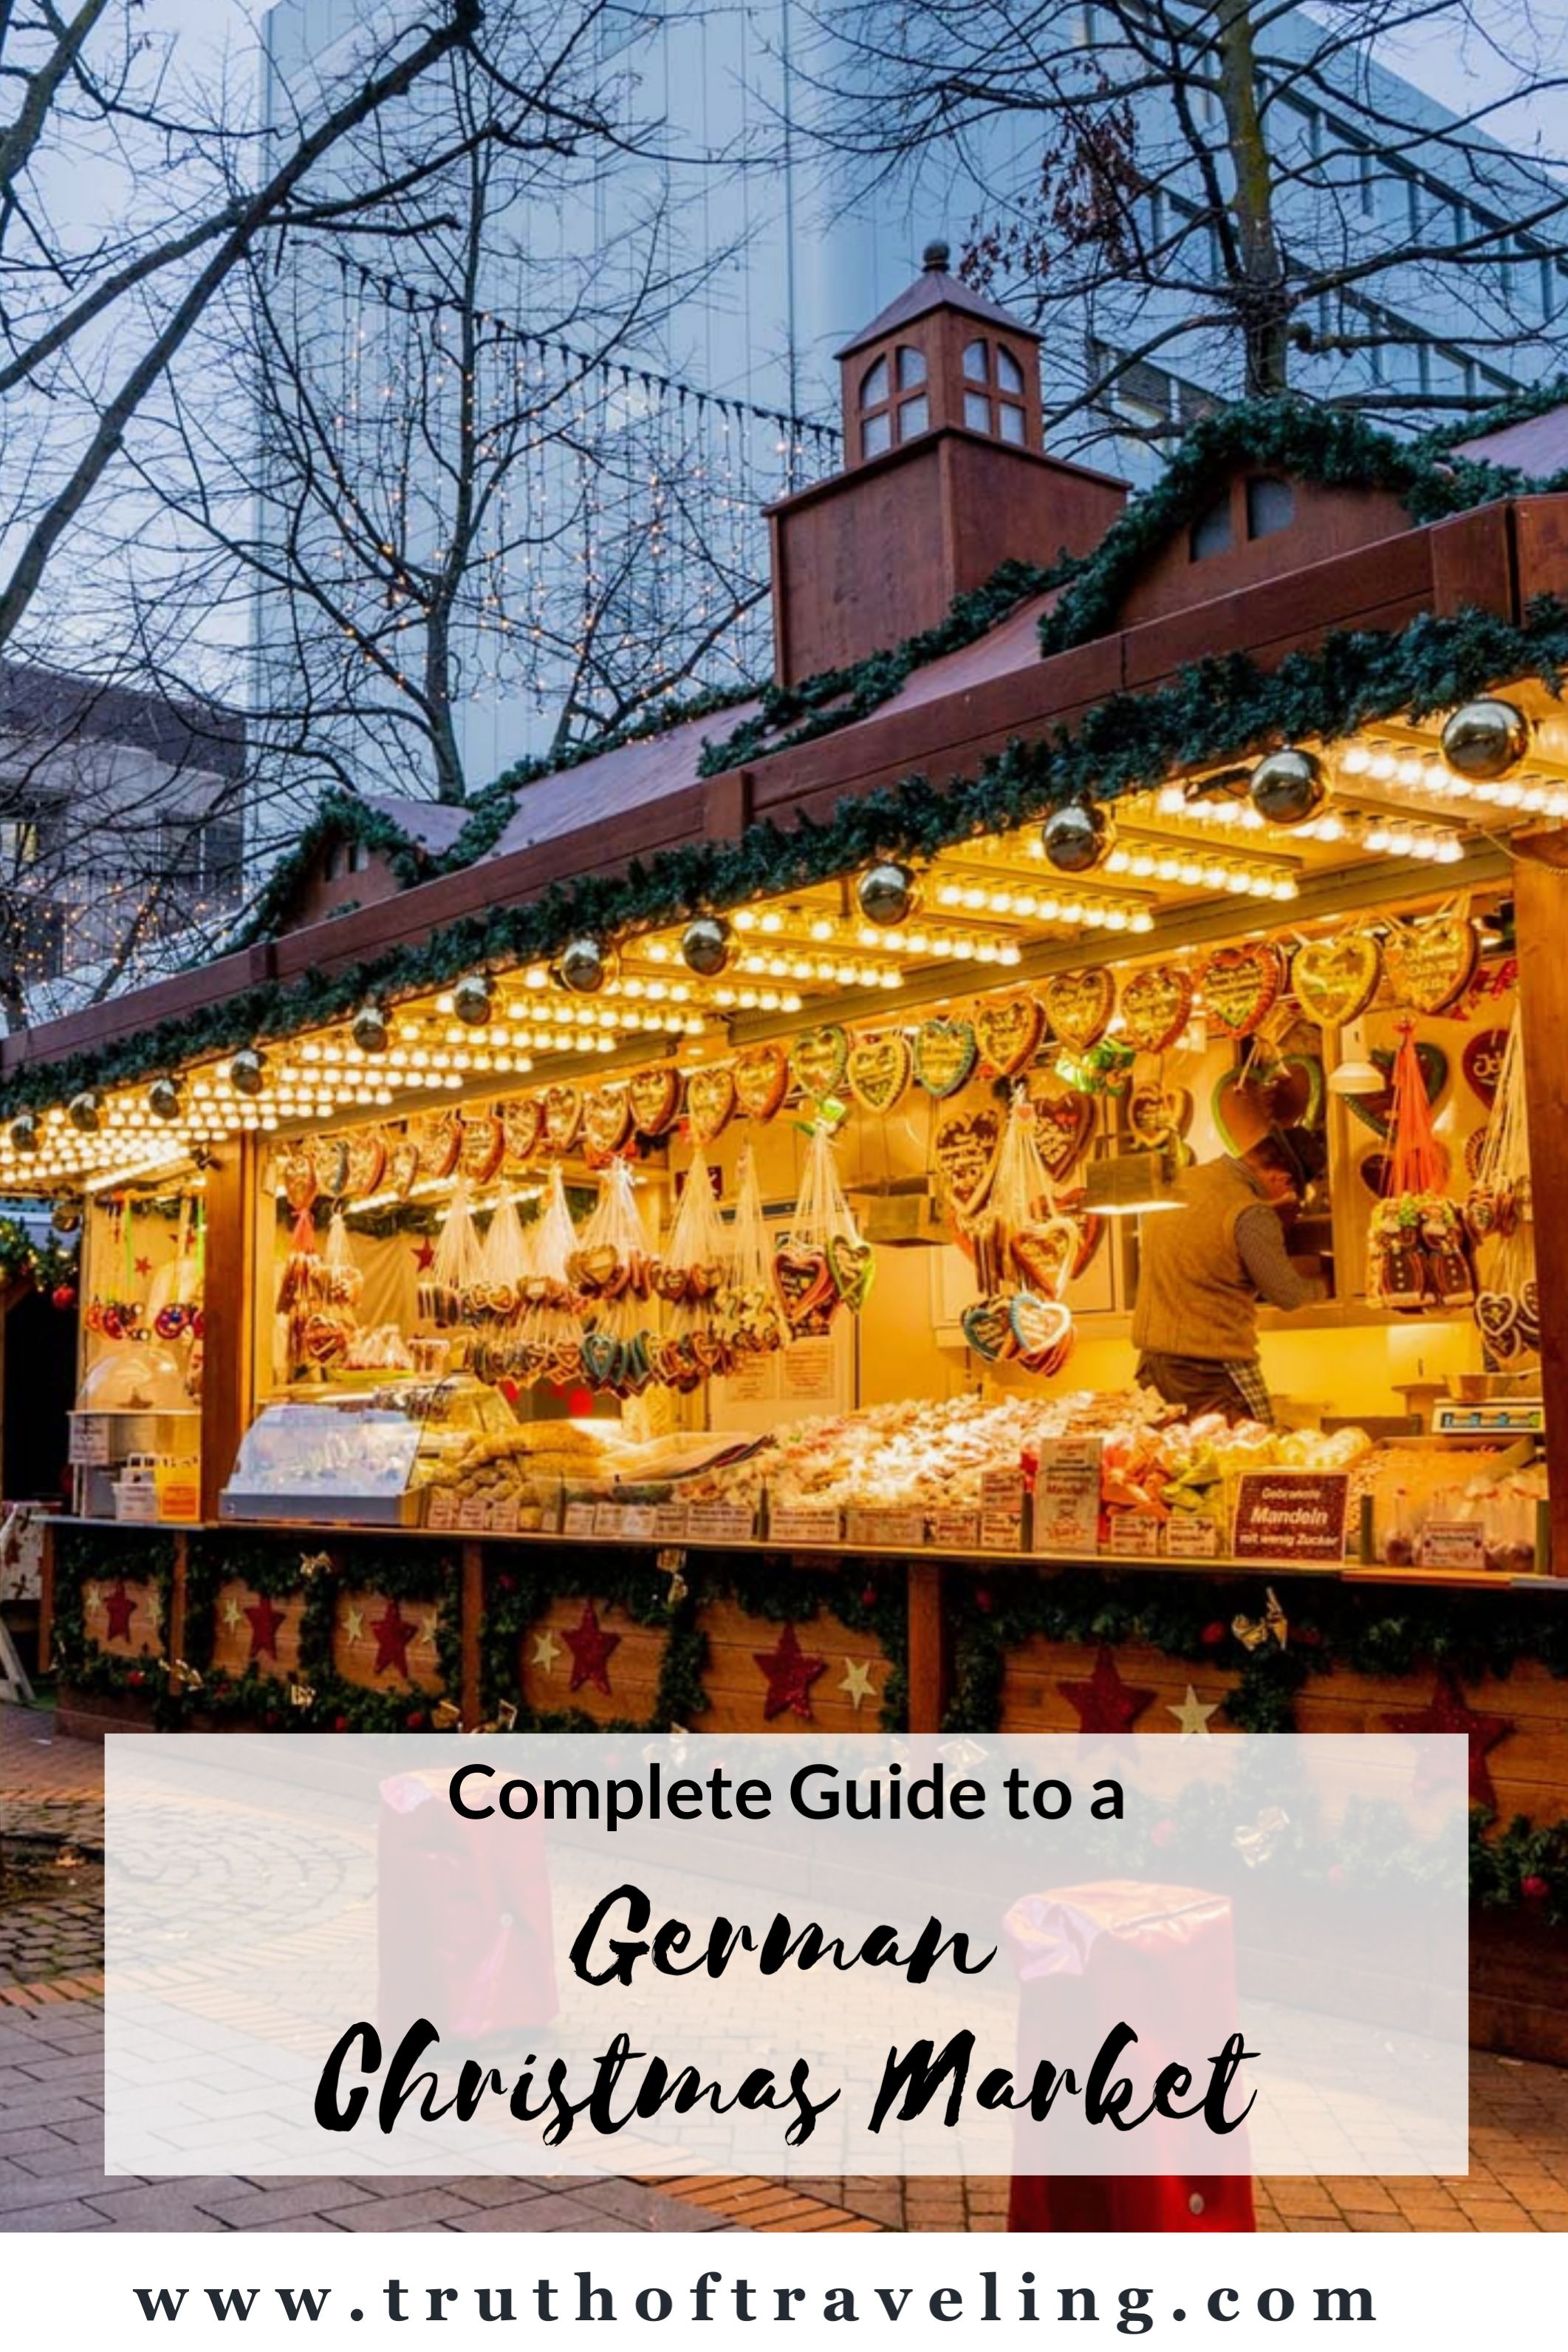 Complete Guide to Visiting a German Christmas Market